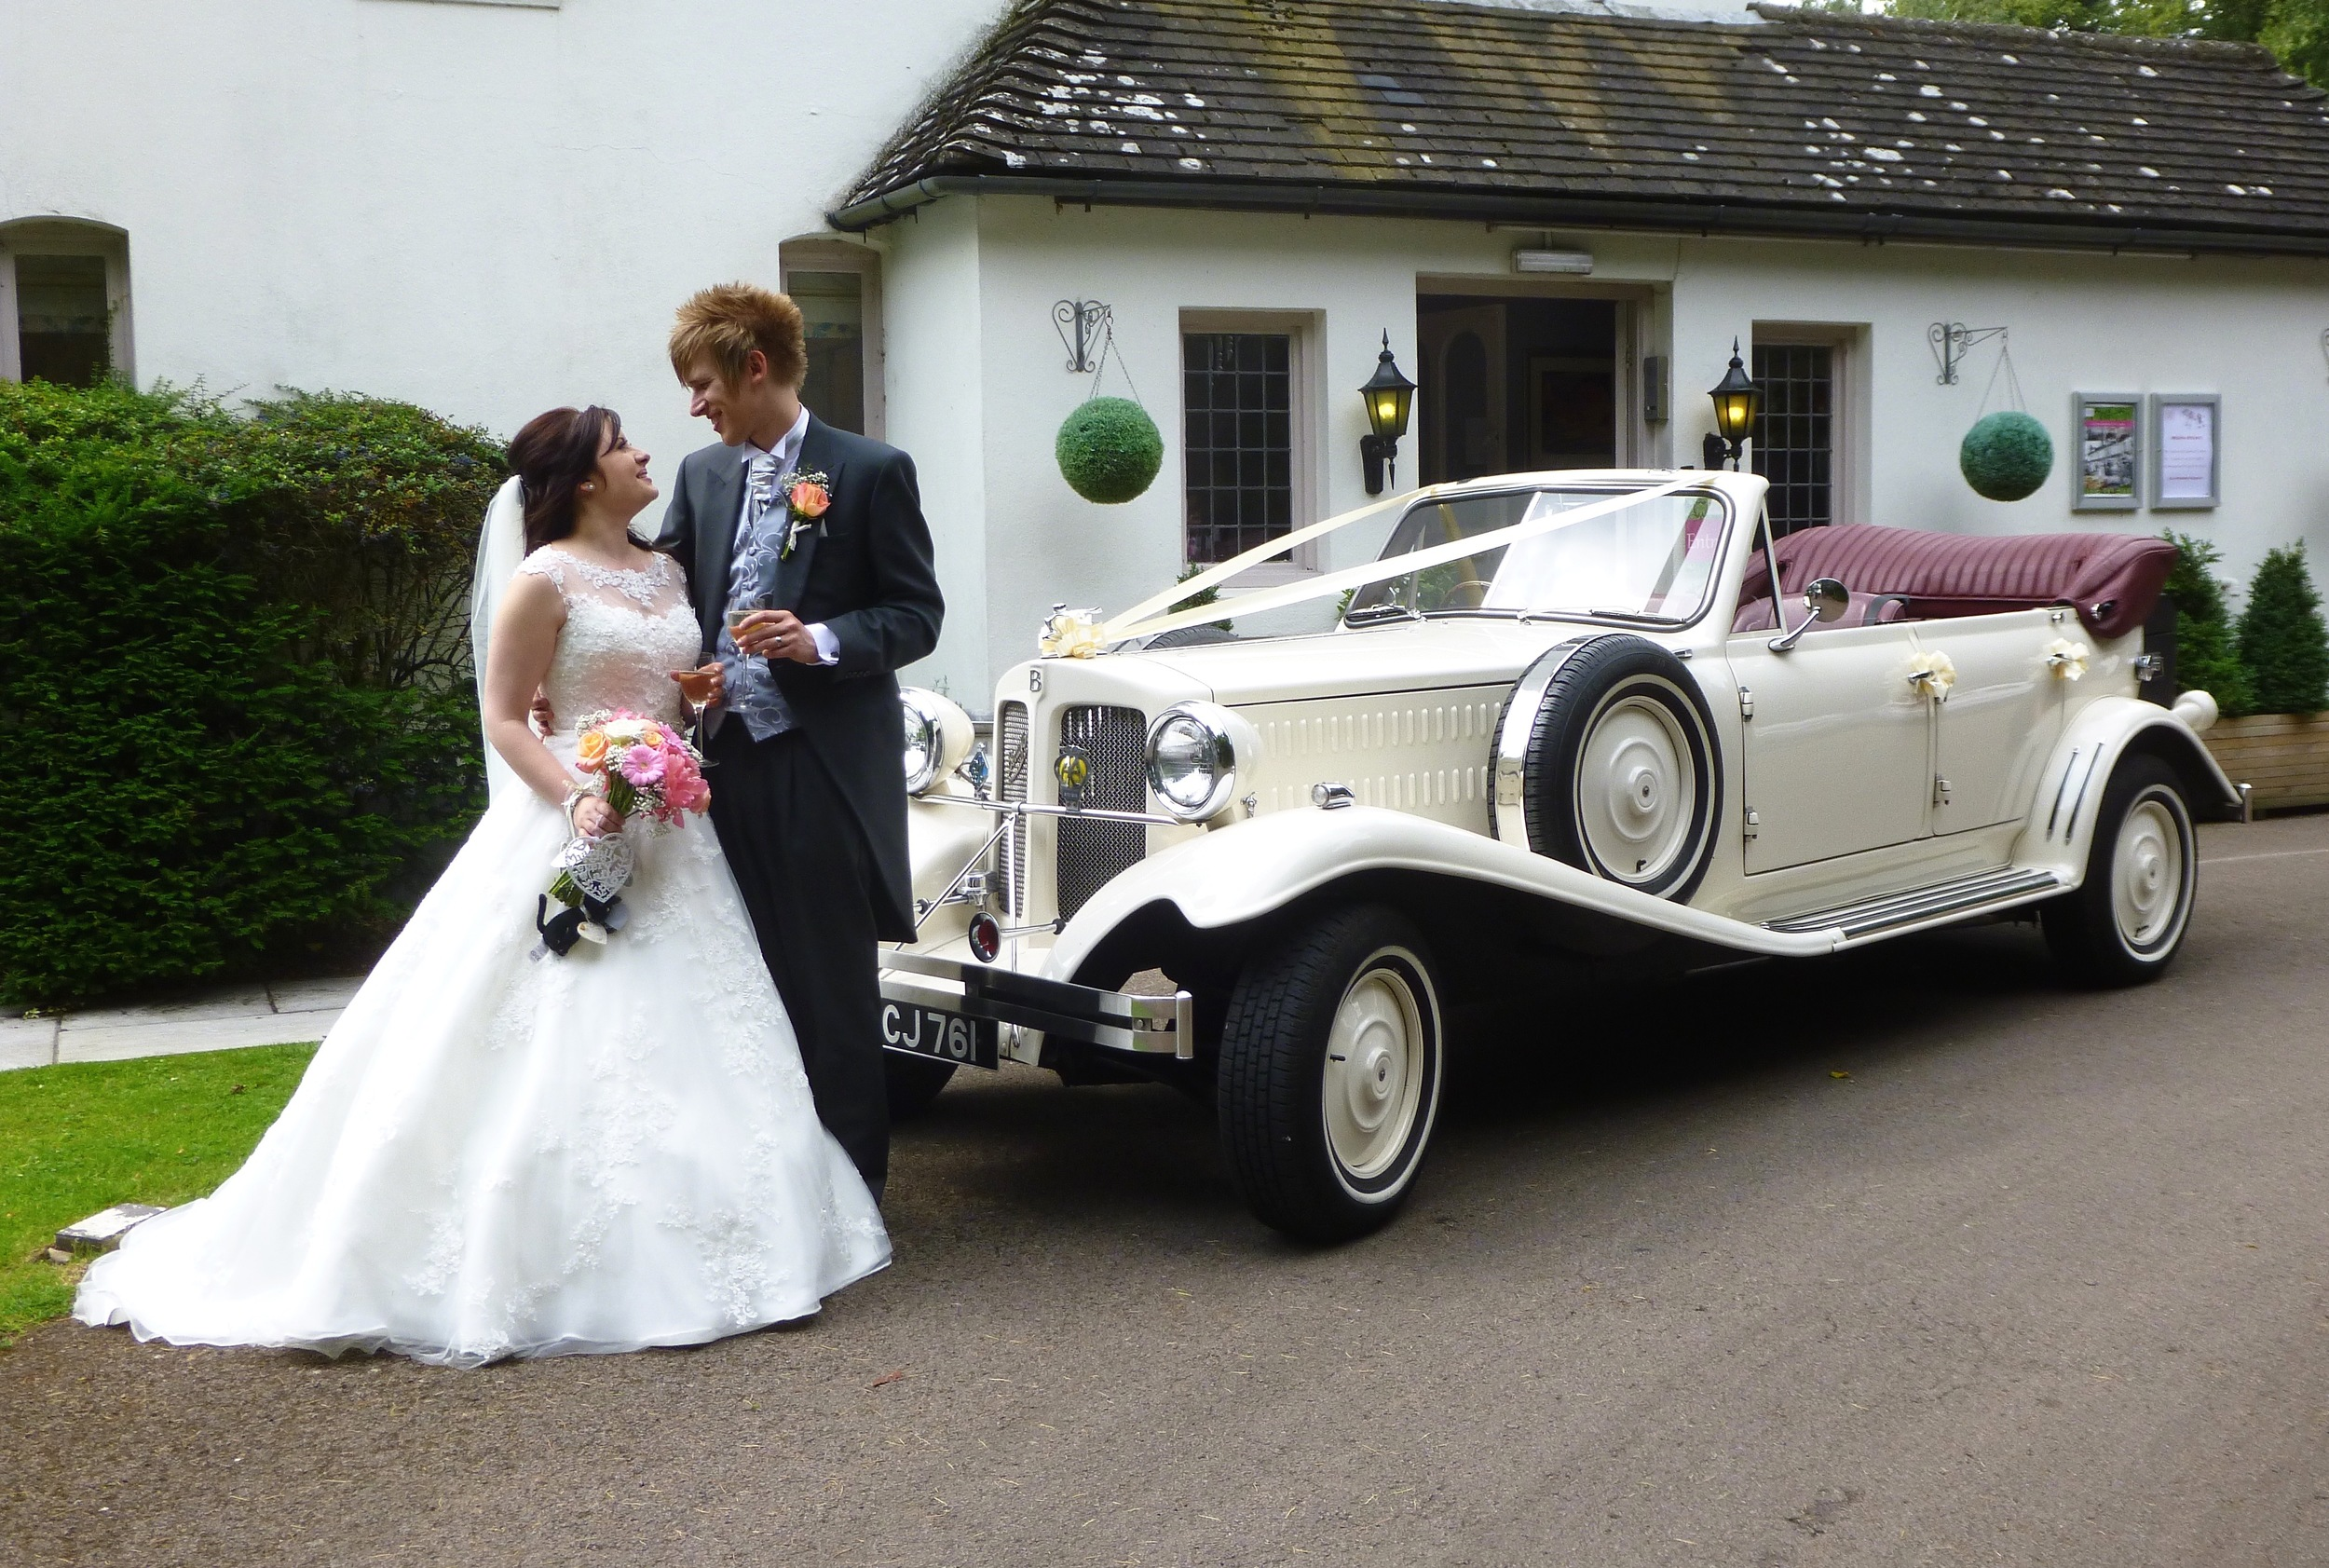 Tim and Gemma following arrival at Ashton Lodge Country House. A lovely location in the Hamlet of Street Ashton, Rugby.